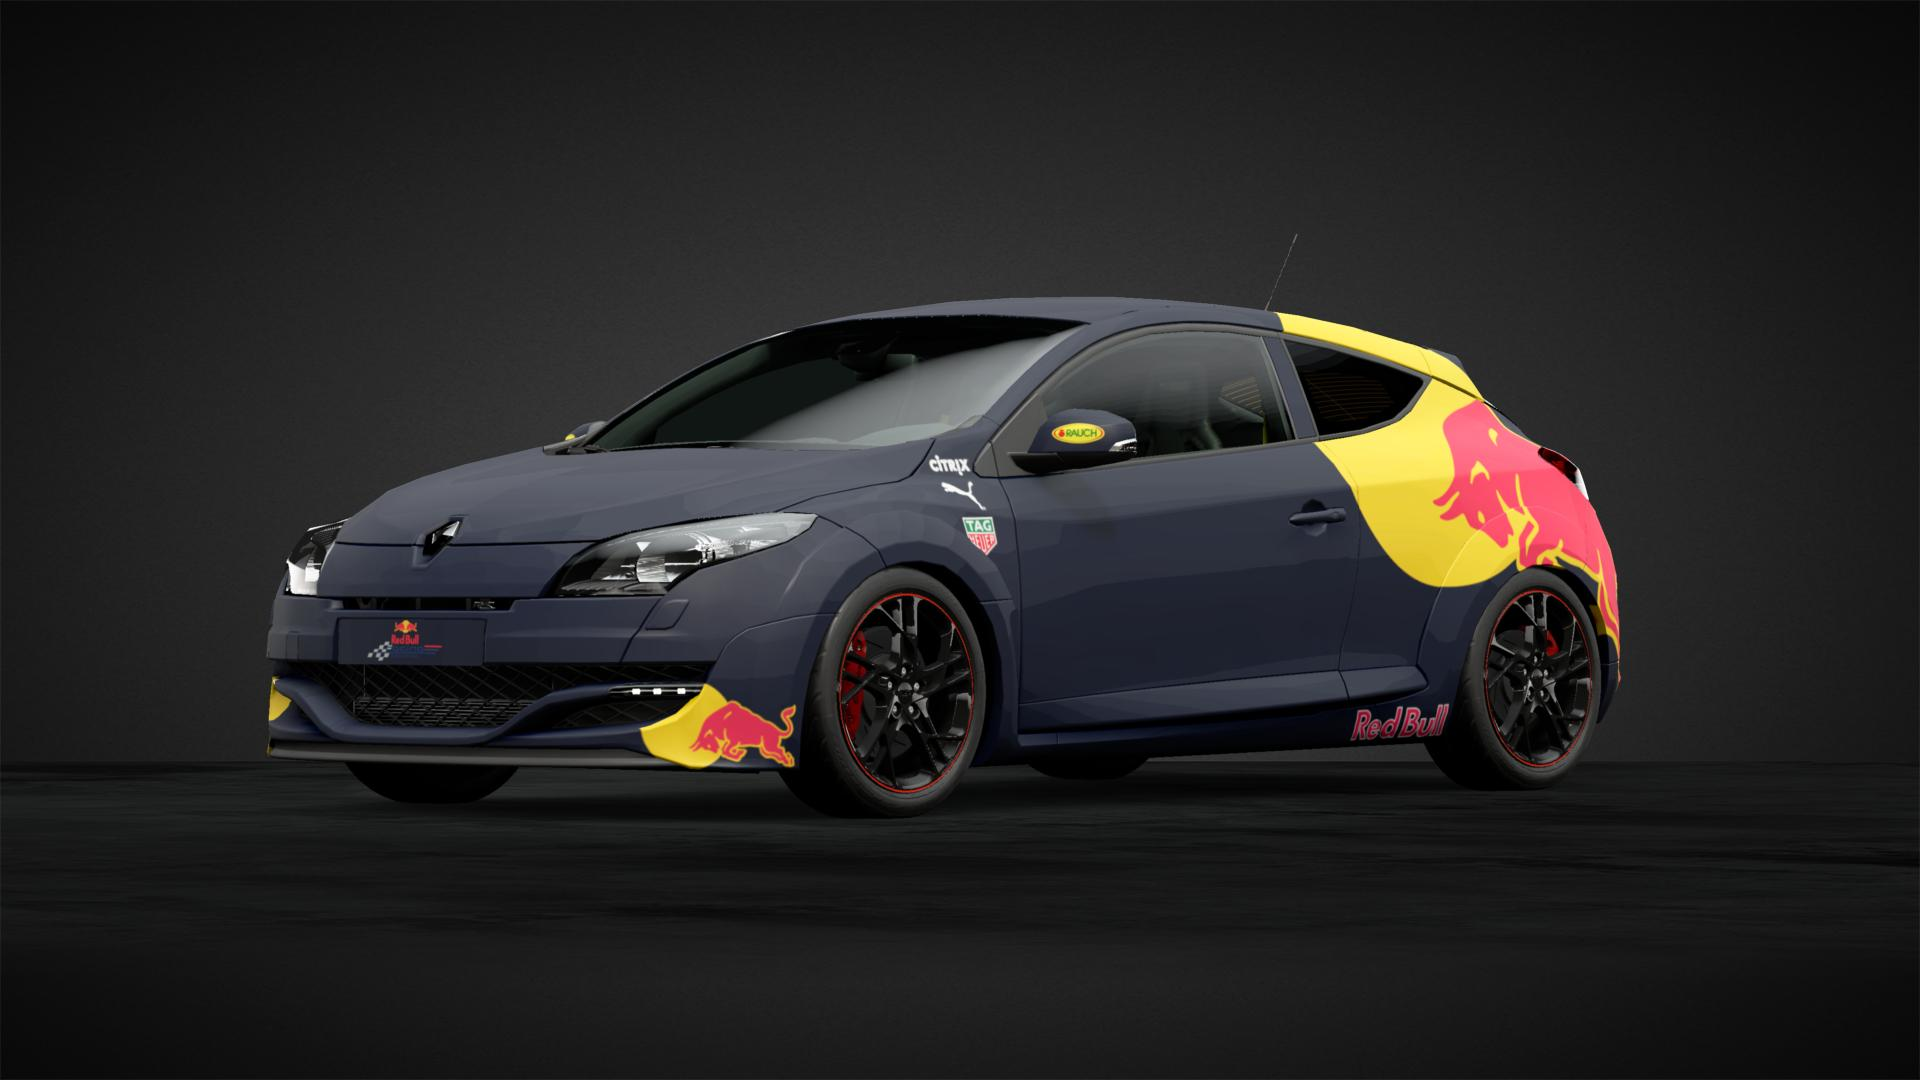 Redbull Racing Edition Car Livery By Valentieskuh Community Gran Turismo Sport